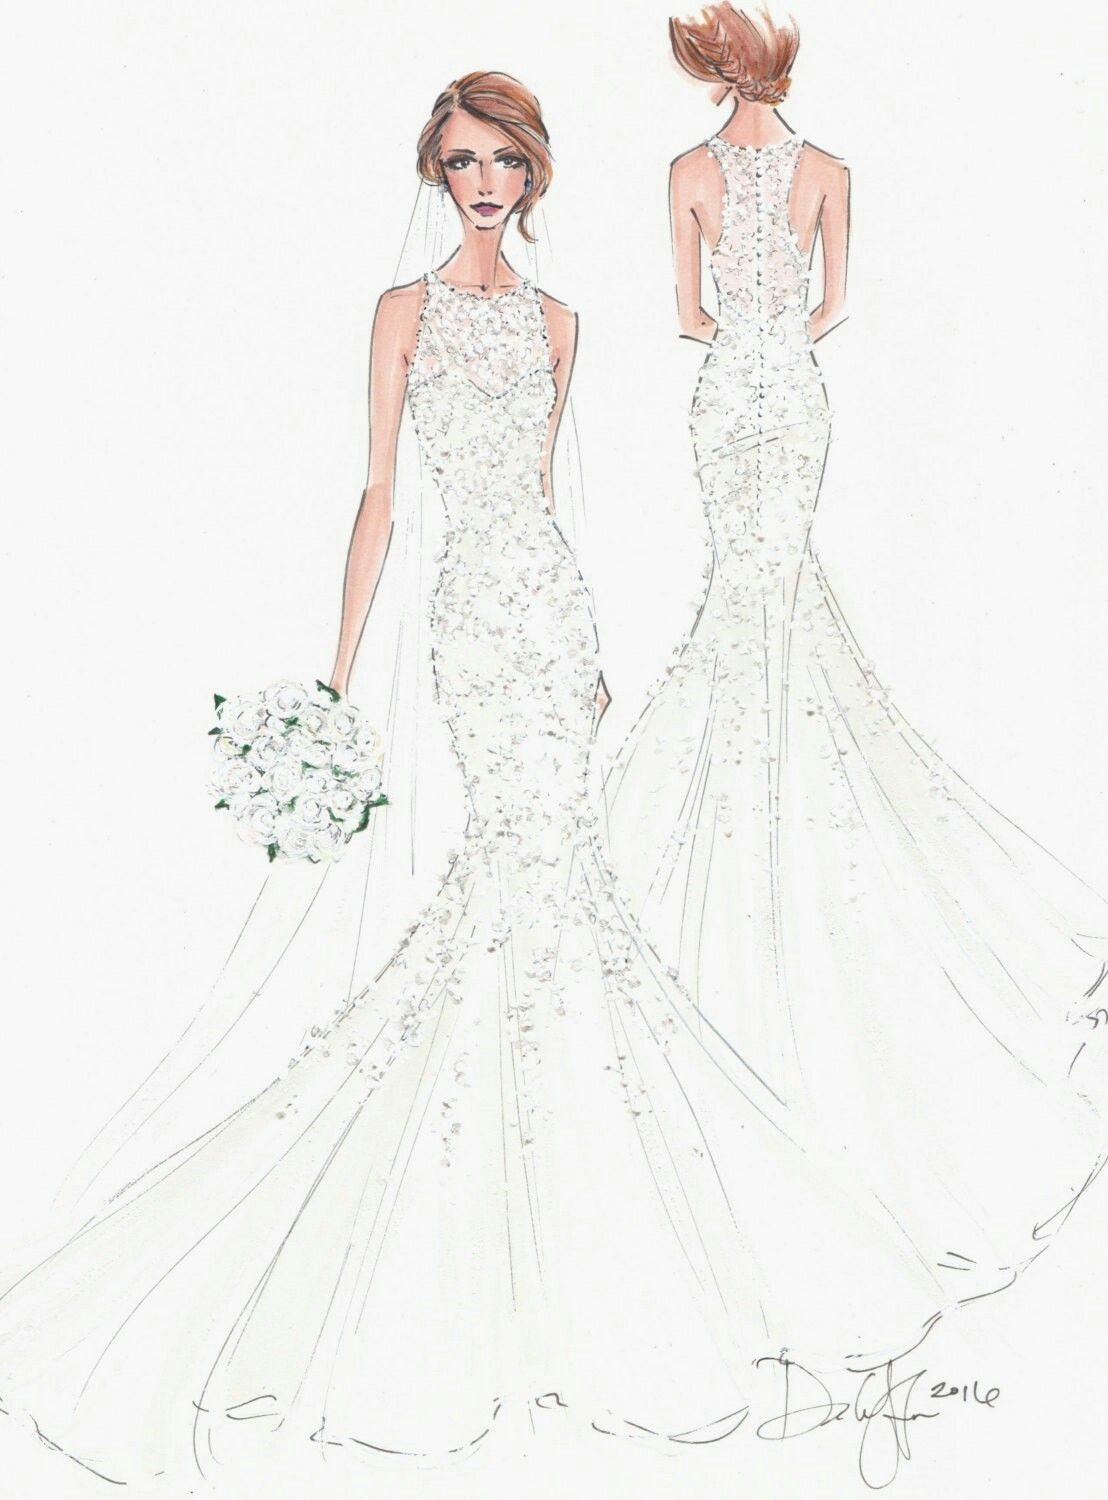 Pin by muedeh on wedding dress | Pinterest | Fashion sketches ...